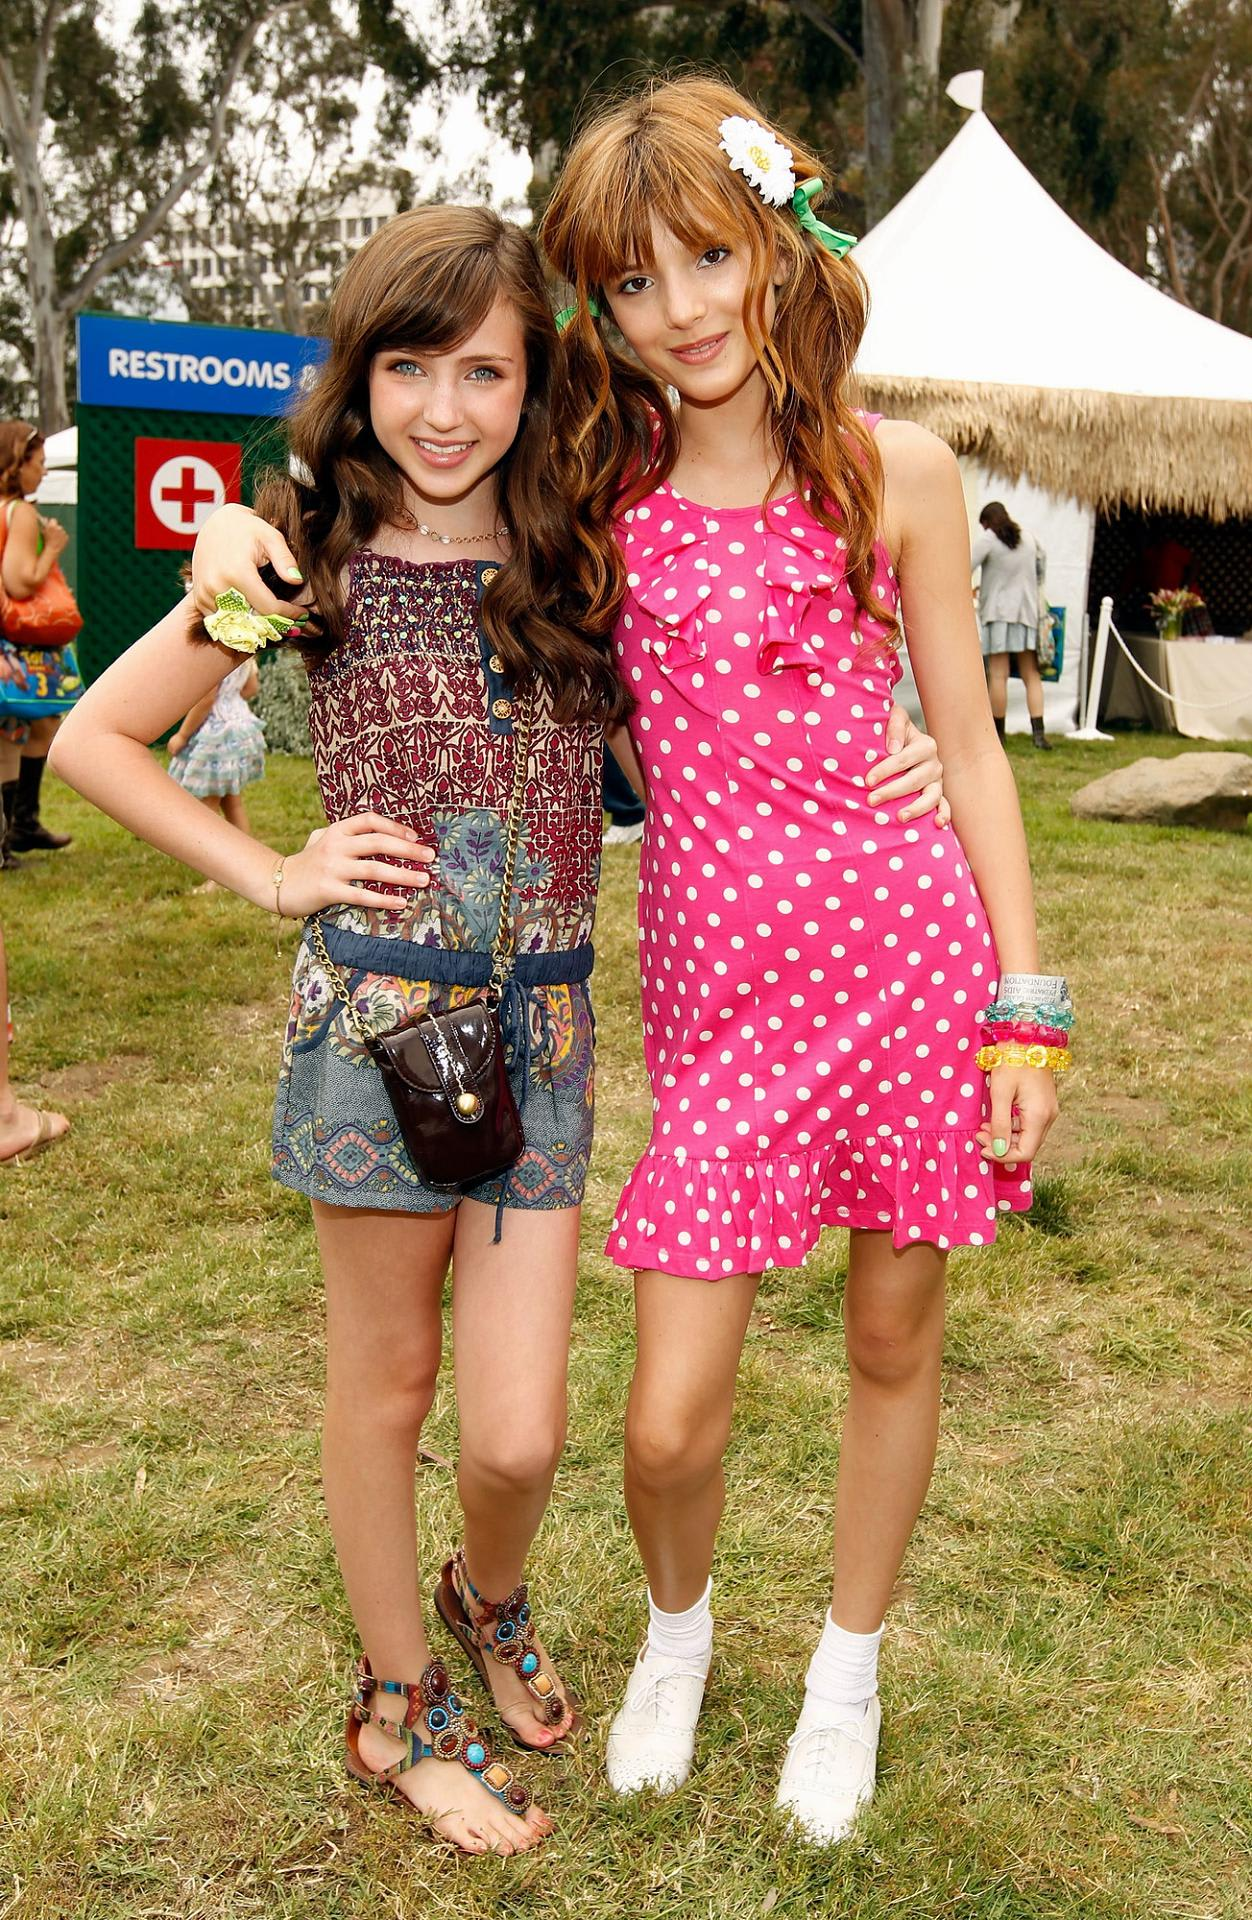 Bella Thorne - A Time For Heroes 13 Jun 2010 2 - Favorite Celebrity Pictures-5203